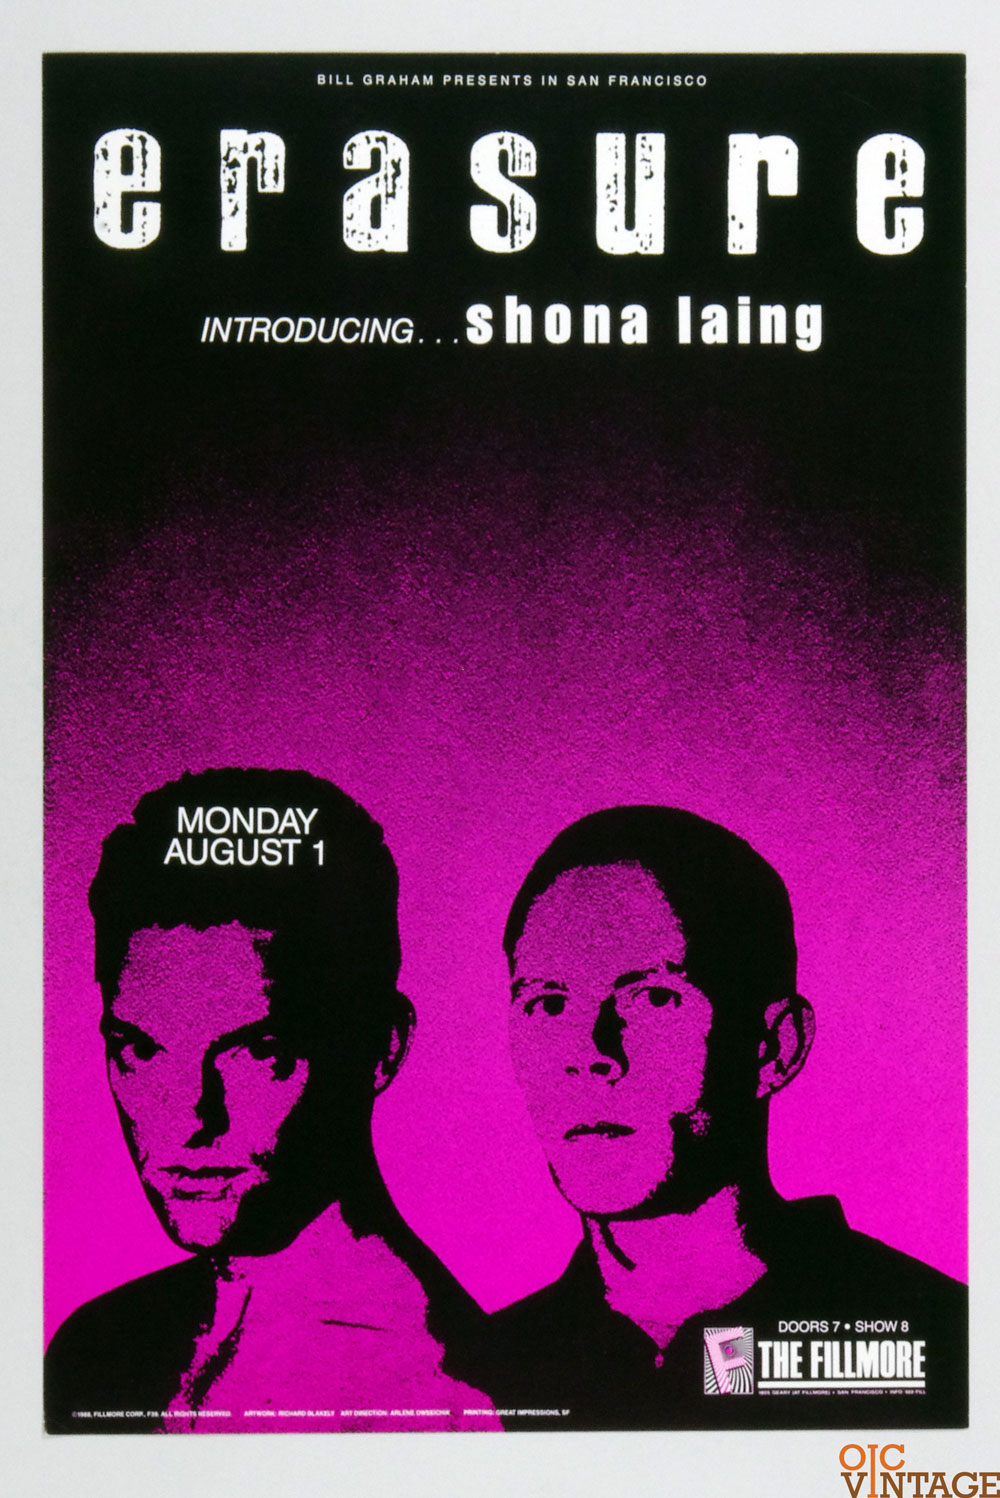 Erasure Shona Laing Poster 1988 Aug 1 New Fillmore